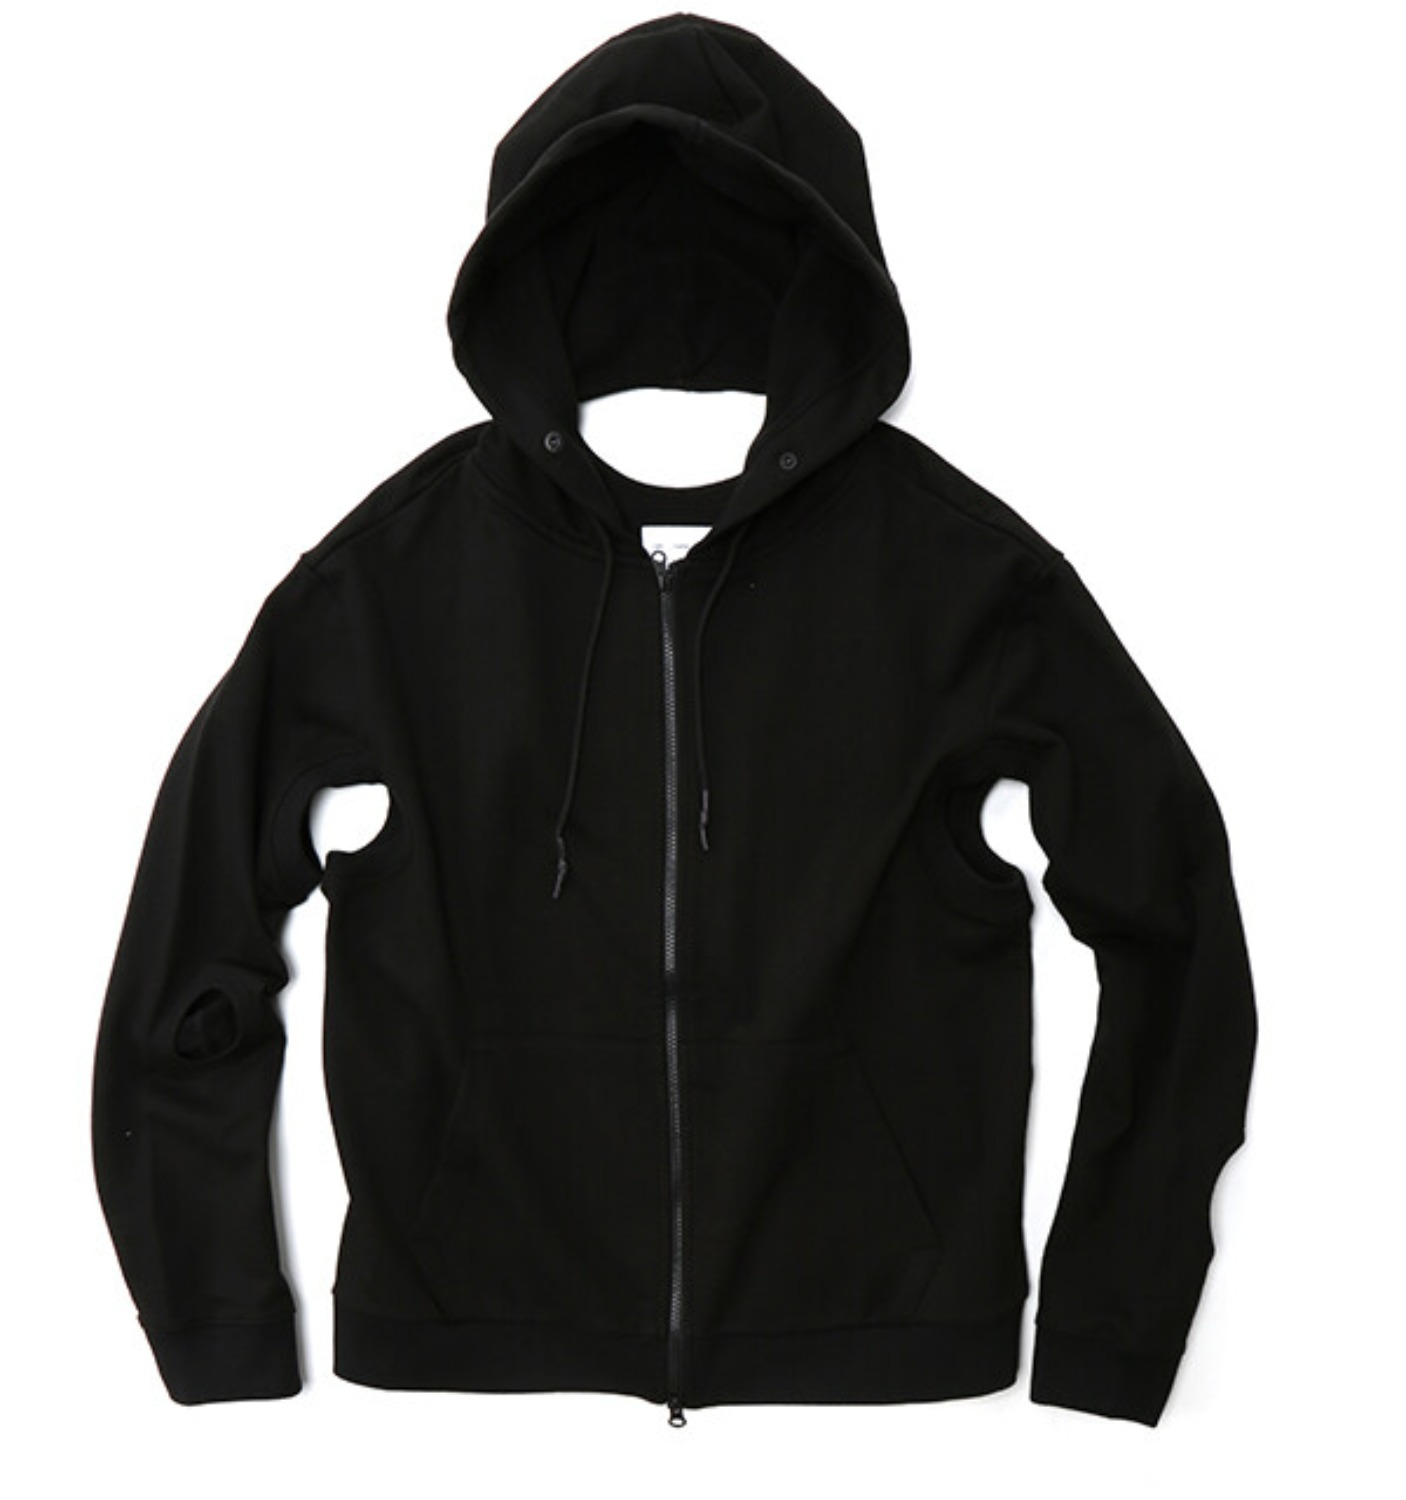 2.0 HOODIE RIGHT BLACK